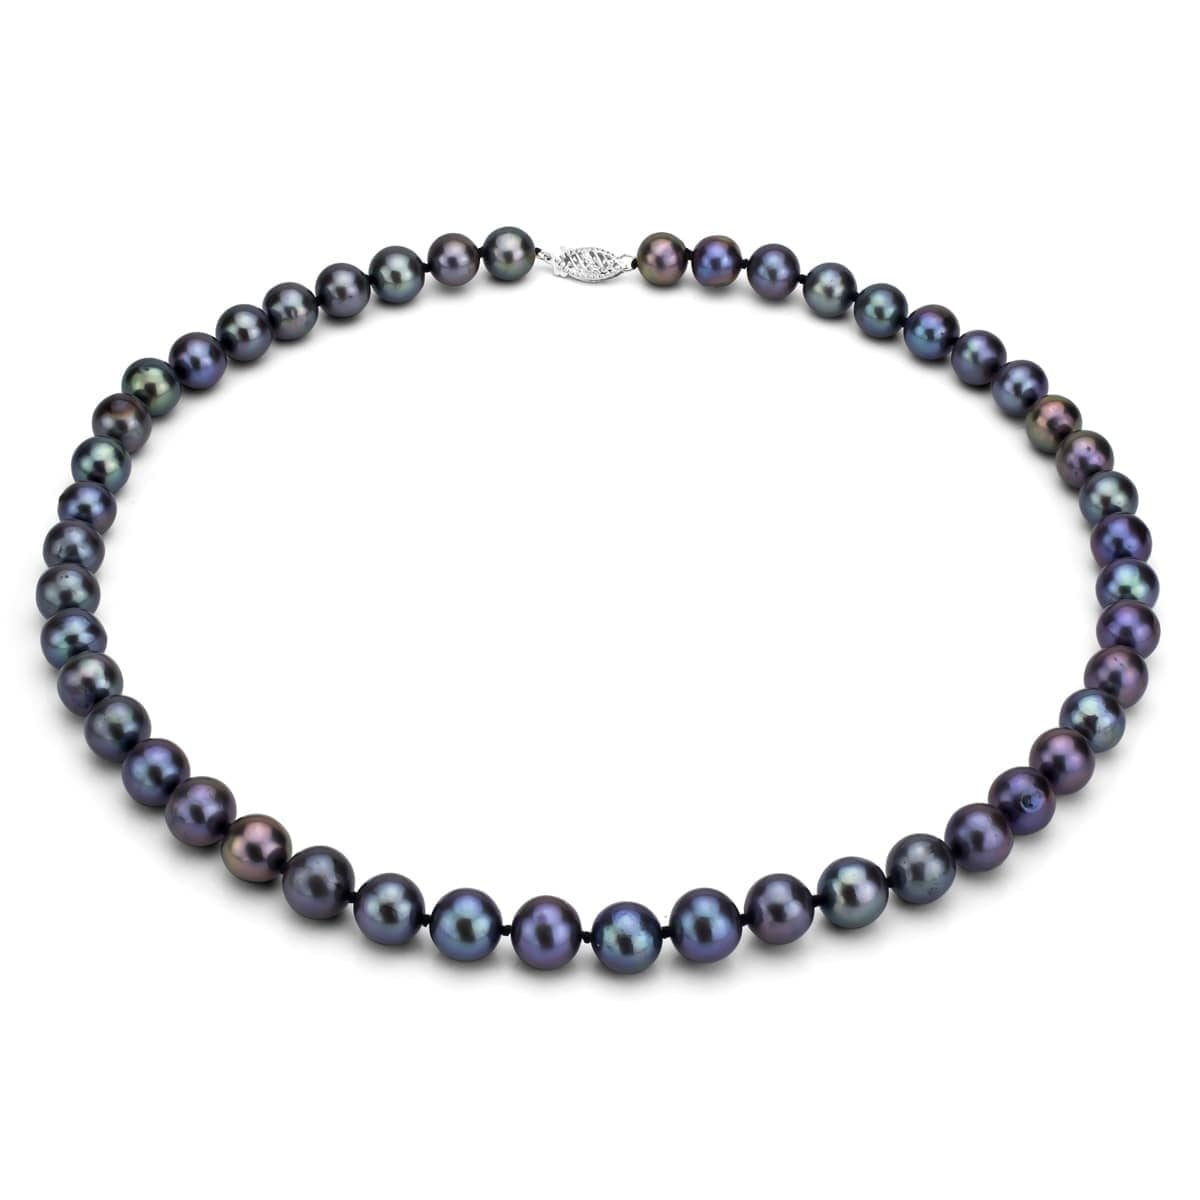 925 Sterling Silver Purple Freshwater Cultured Pearl Necklace in Silver Choice of Lengths 16 20 24 18 and Variety of mm Options